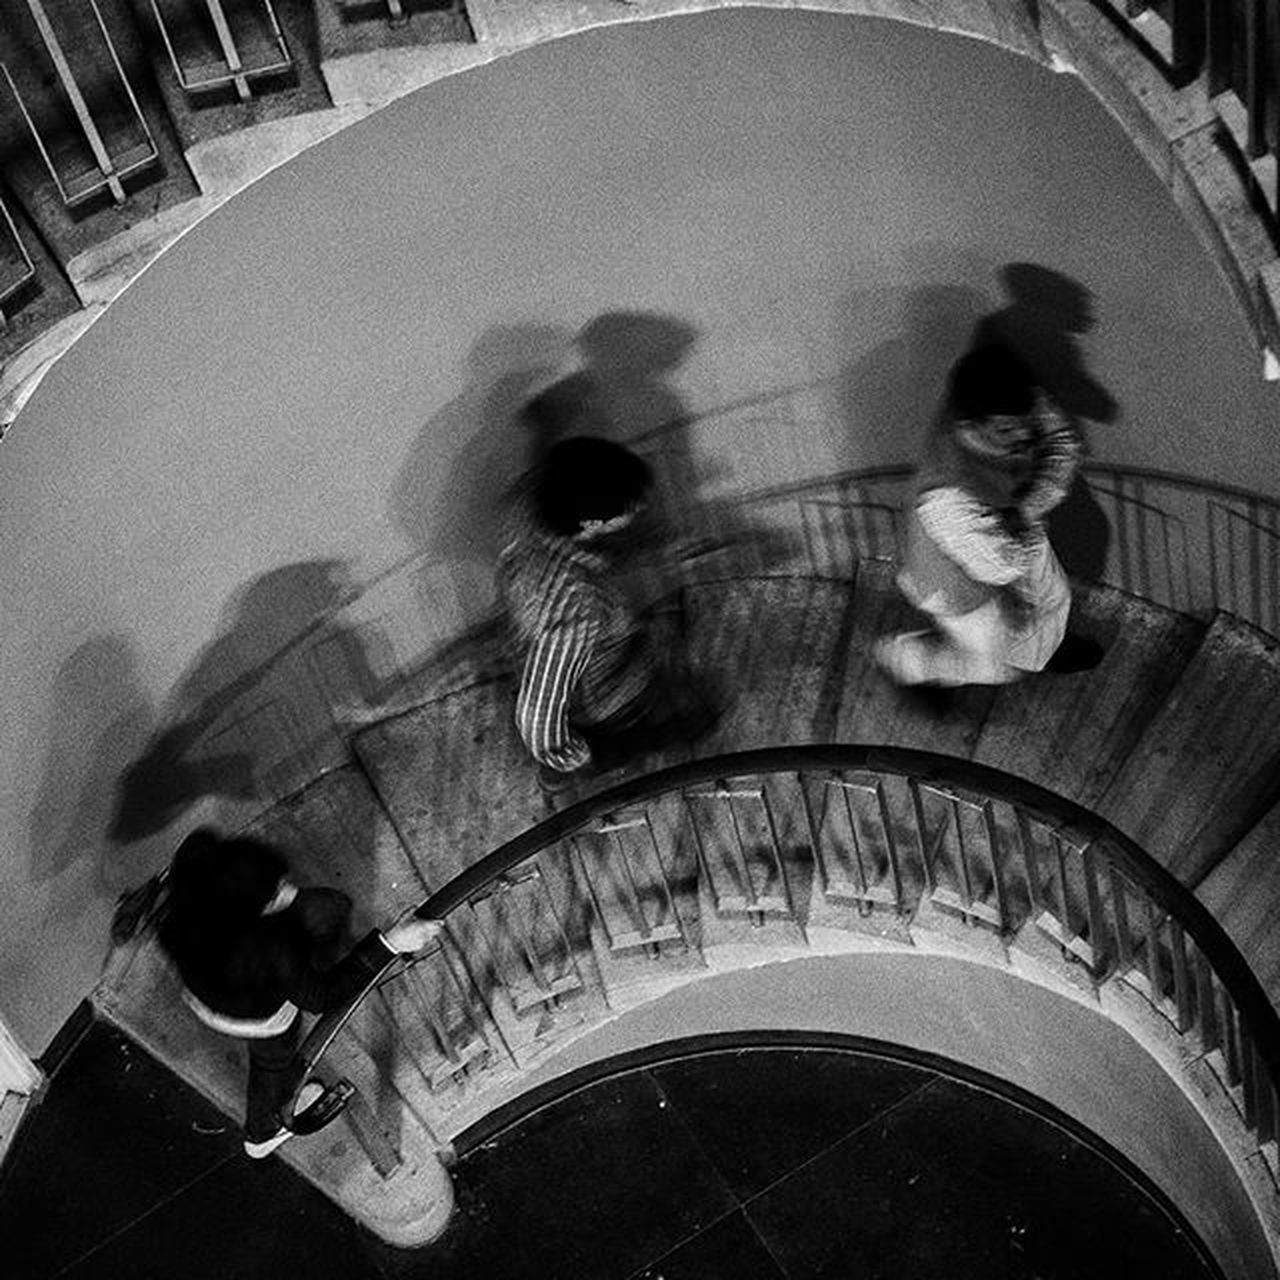 Staircase inside the Mehrangarh Fort. Incredibleindia Bnw Bnw_captures Bnw_society Rajasthan Mehrangarh Fort Travel Stairs Jodhpur Phlearncontest Phlearnbw Photography In Motion Showcase April The Architect - 2016 EyeEm Awards People Together Flying High